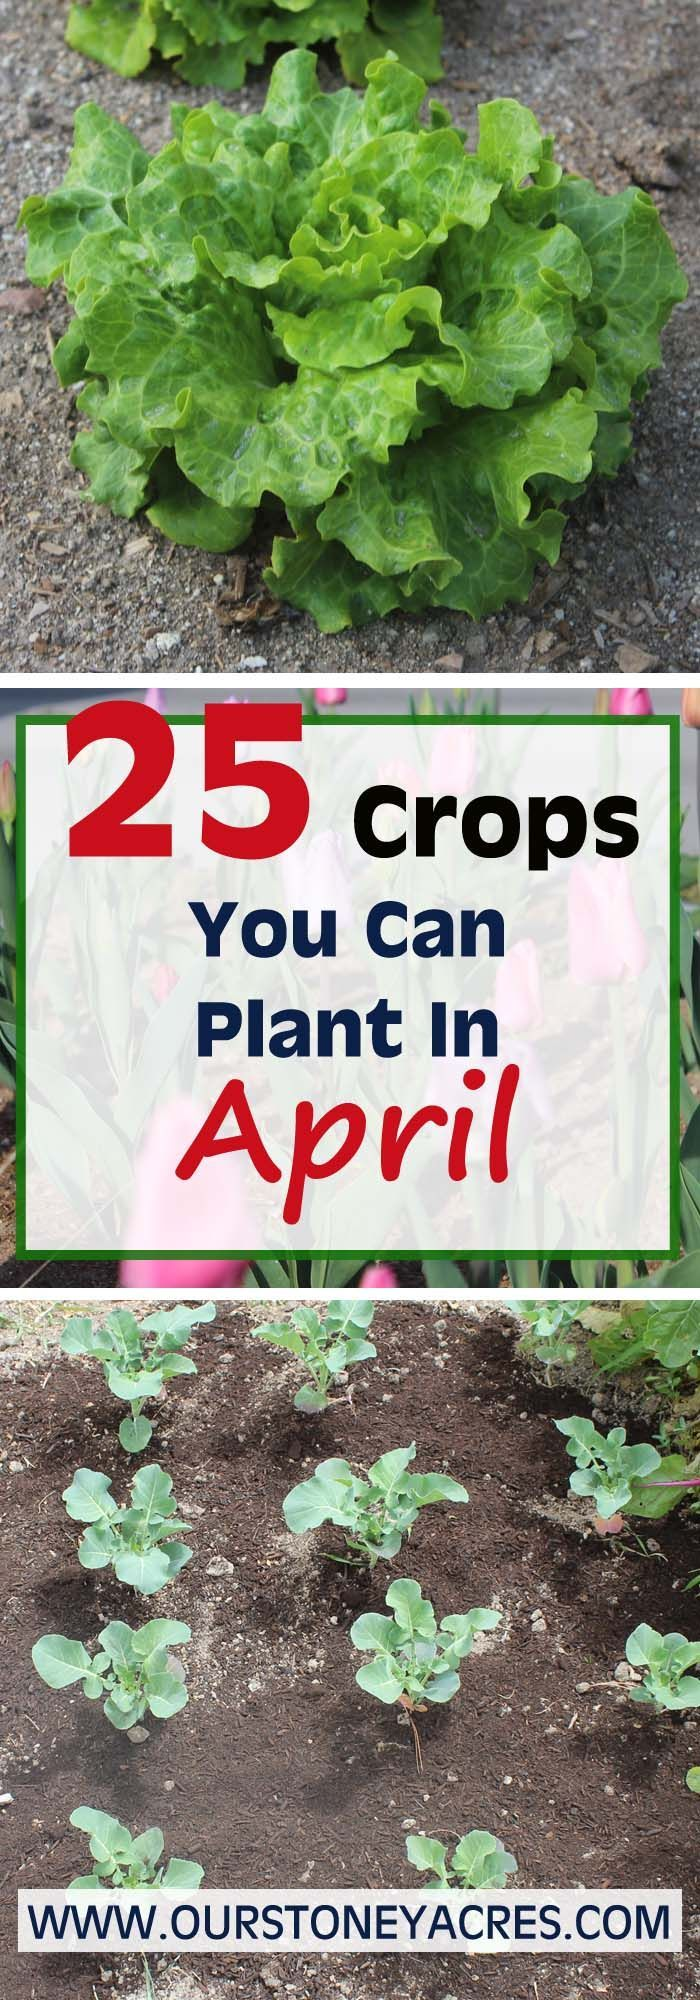 As the weather finally starts to warm this April Planting guide will help those of you in zones 5 and 6 to get an early start on this year's vegetable garden.